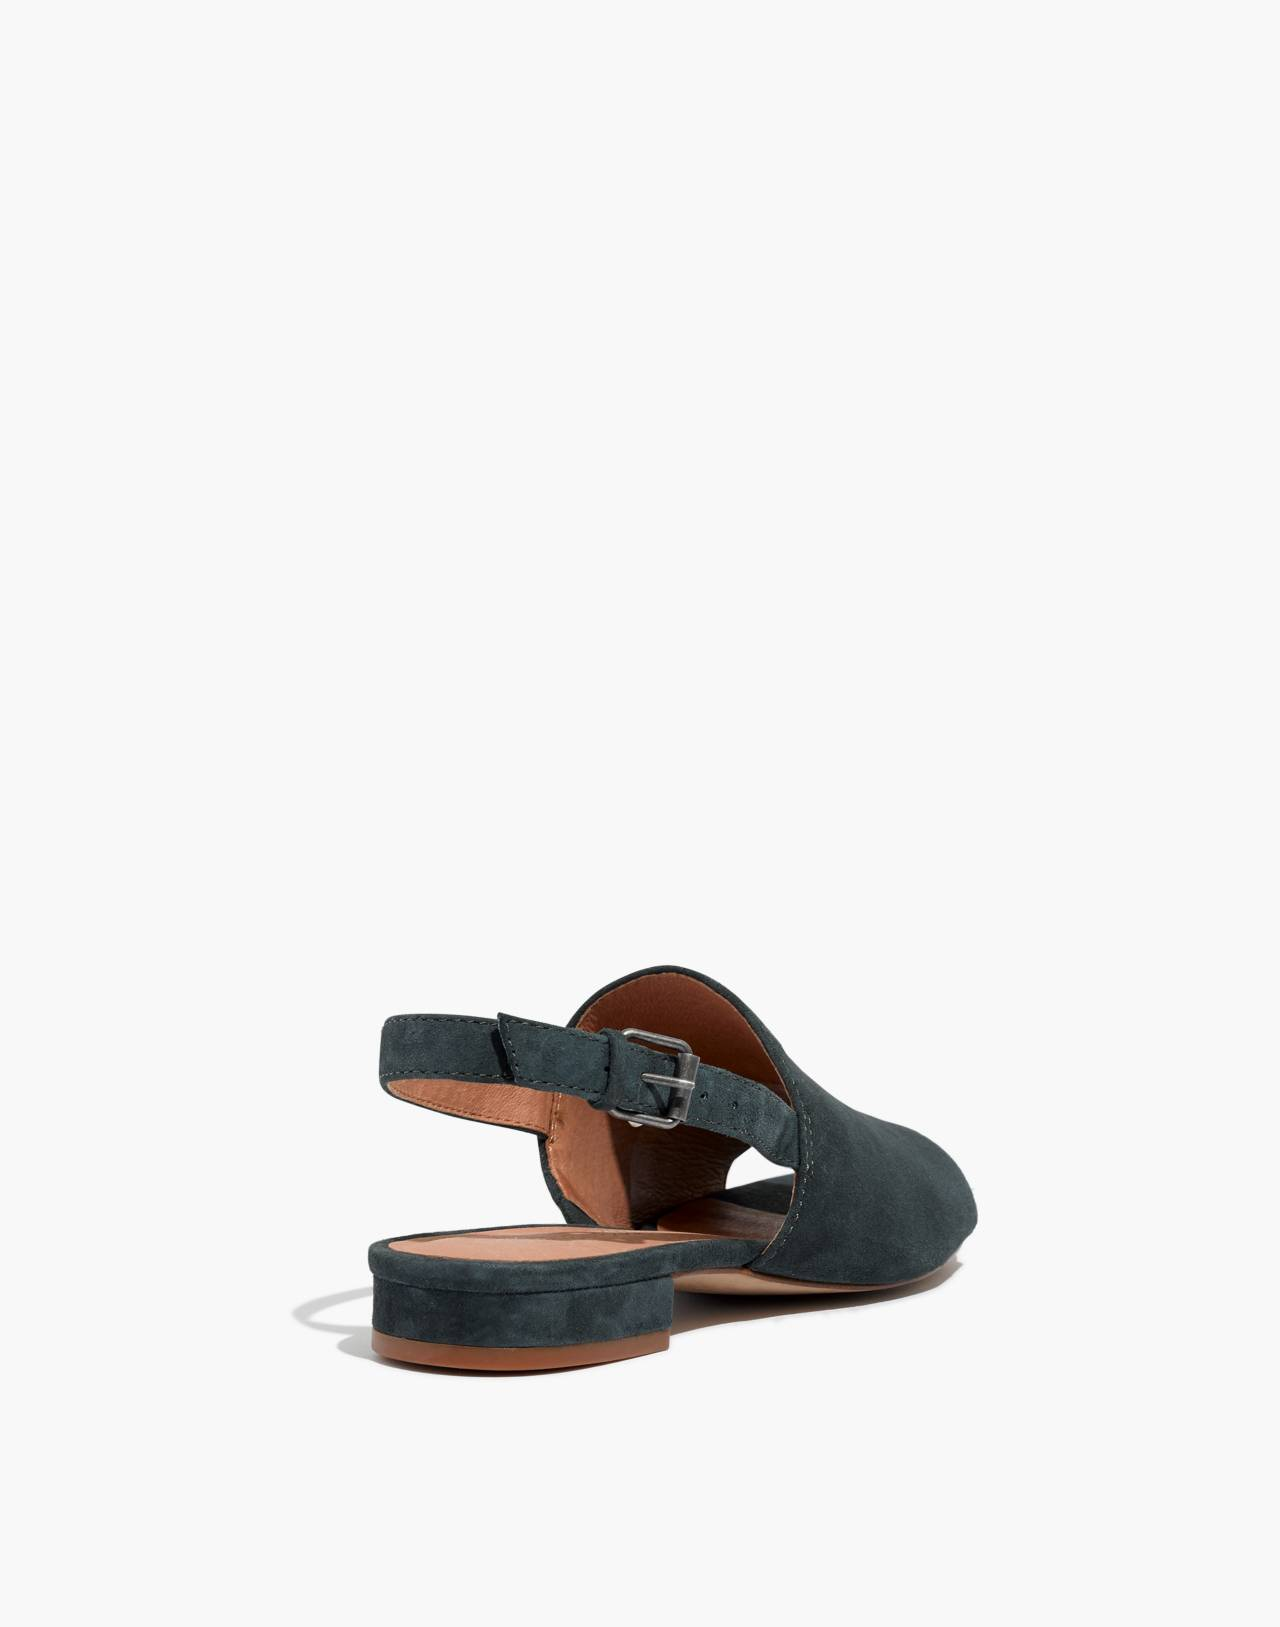 The Noelle Slingback Sandal in Suede in midnight spruce image 4